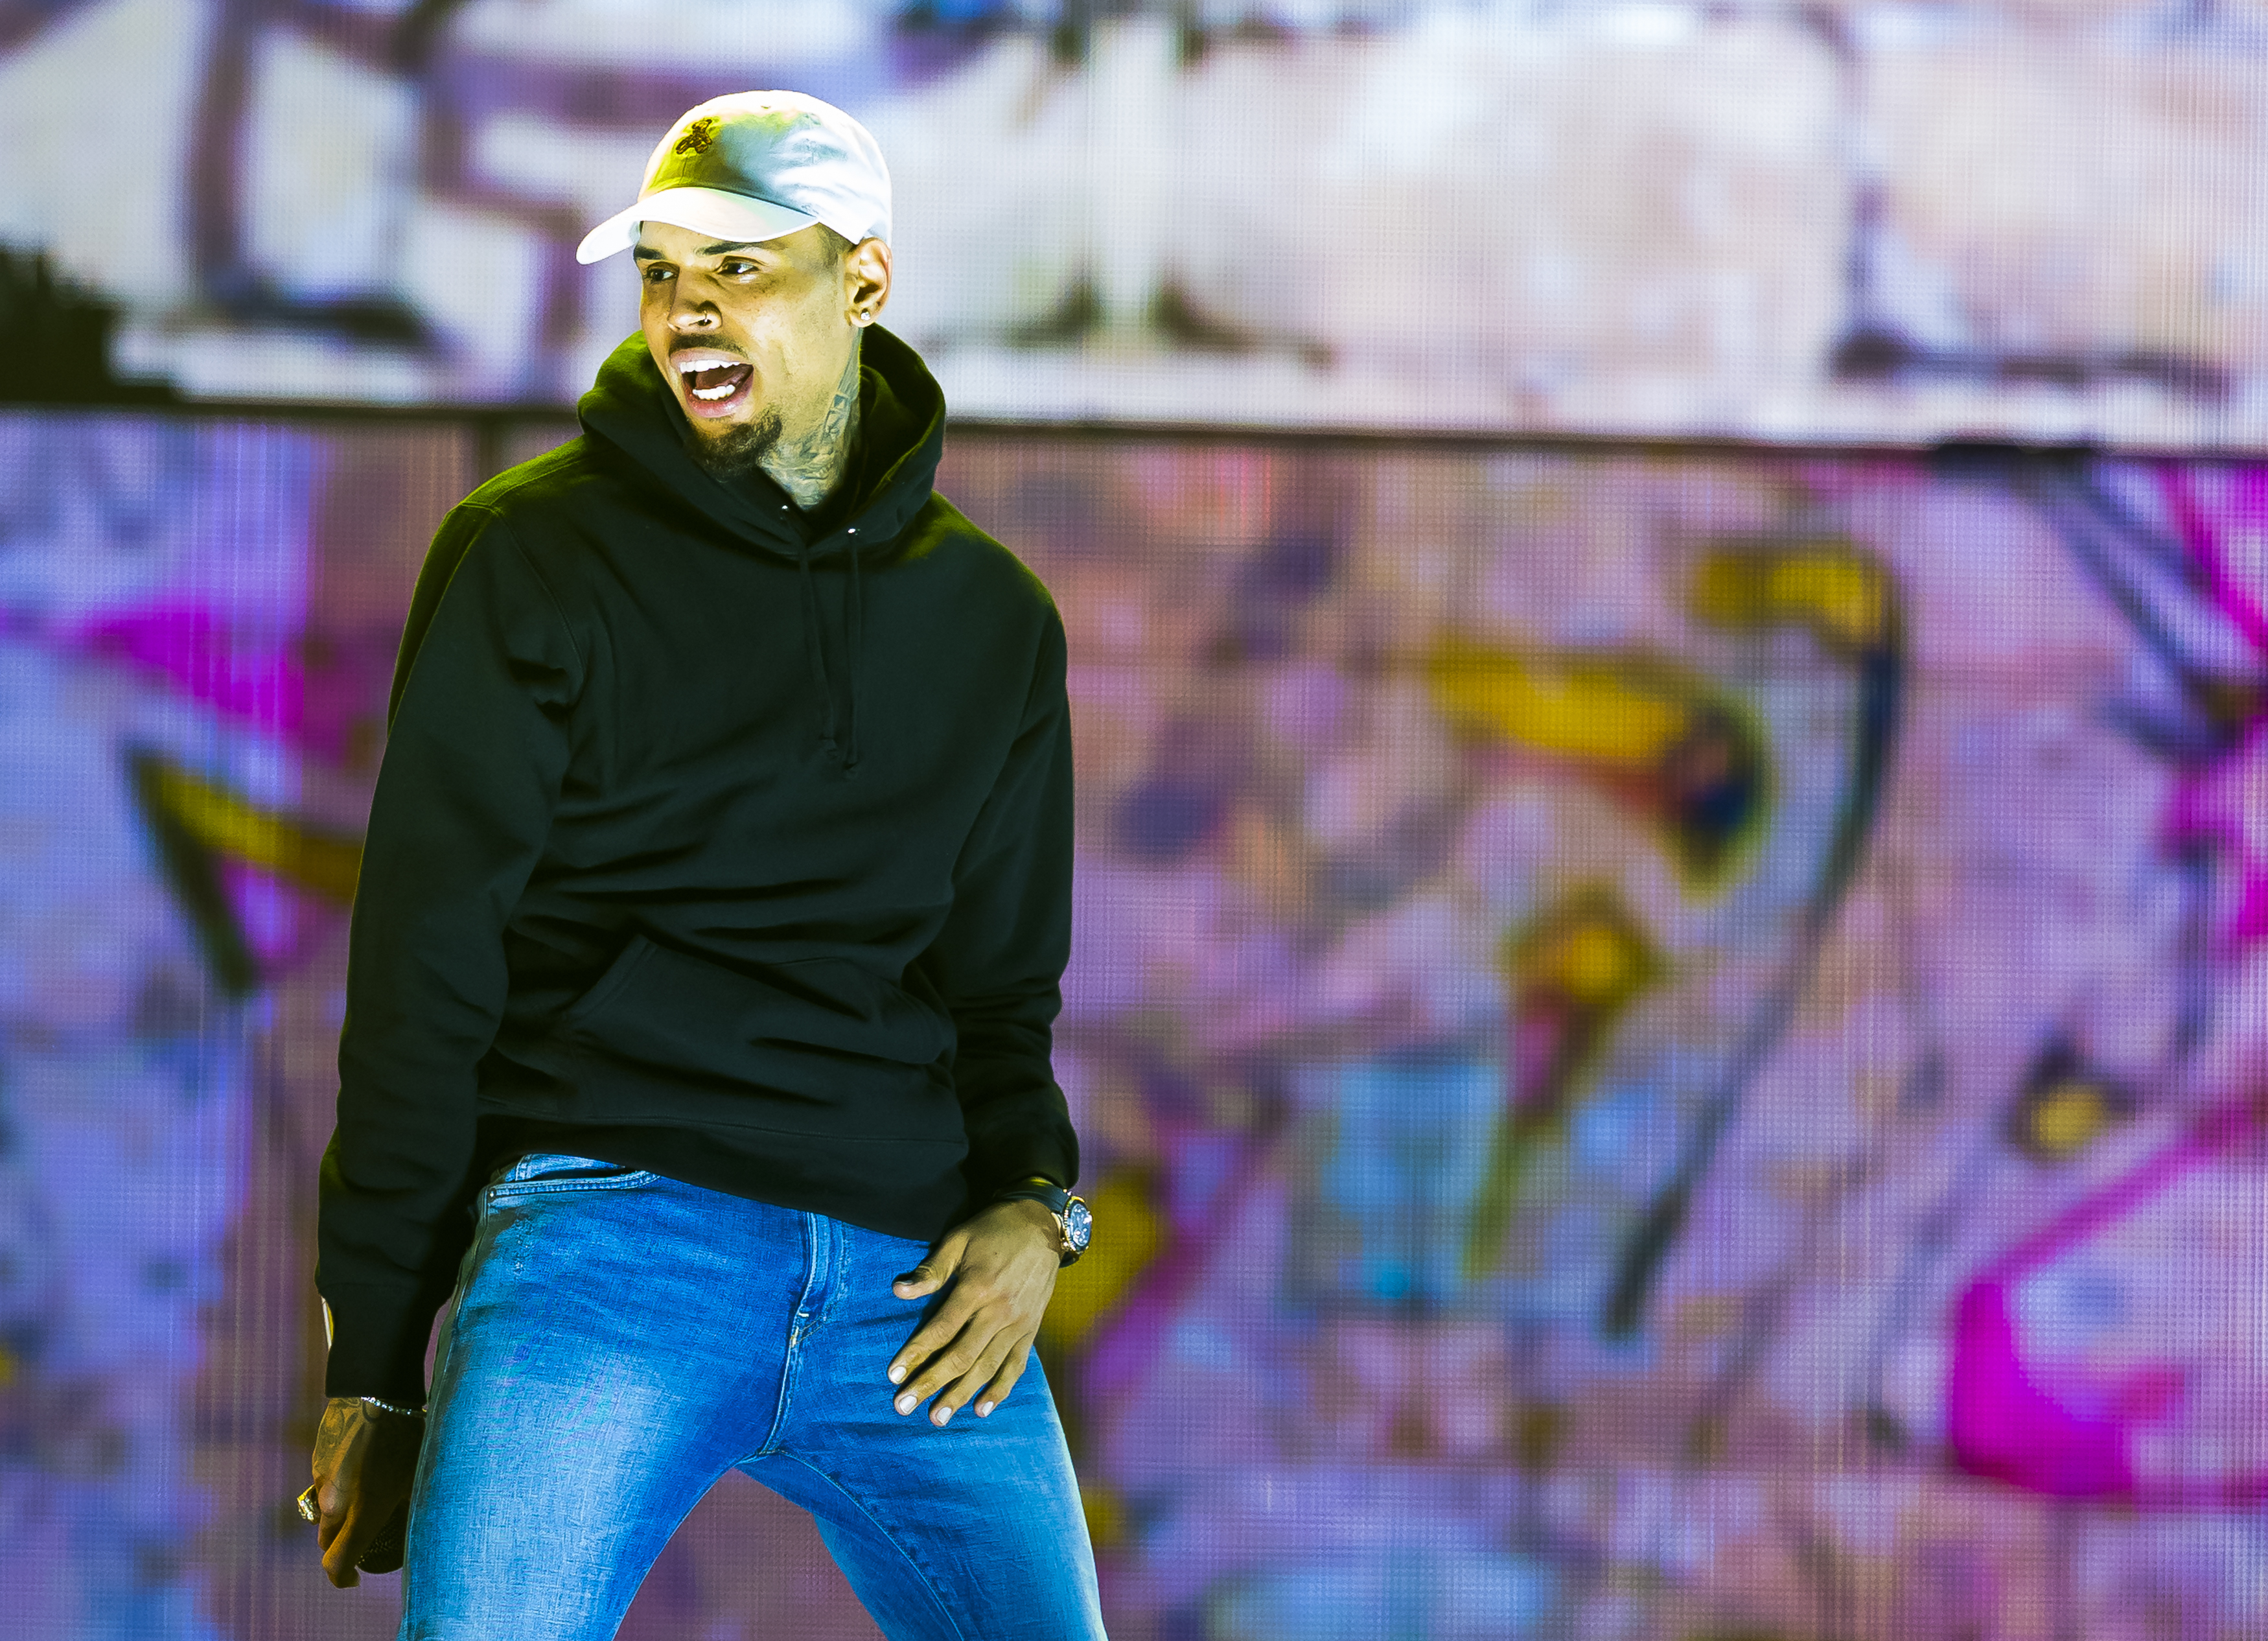 Chris Brown Performs in Concert in Oslo